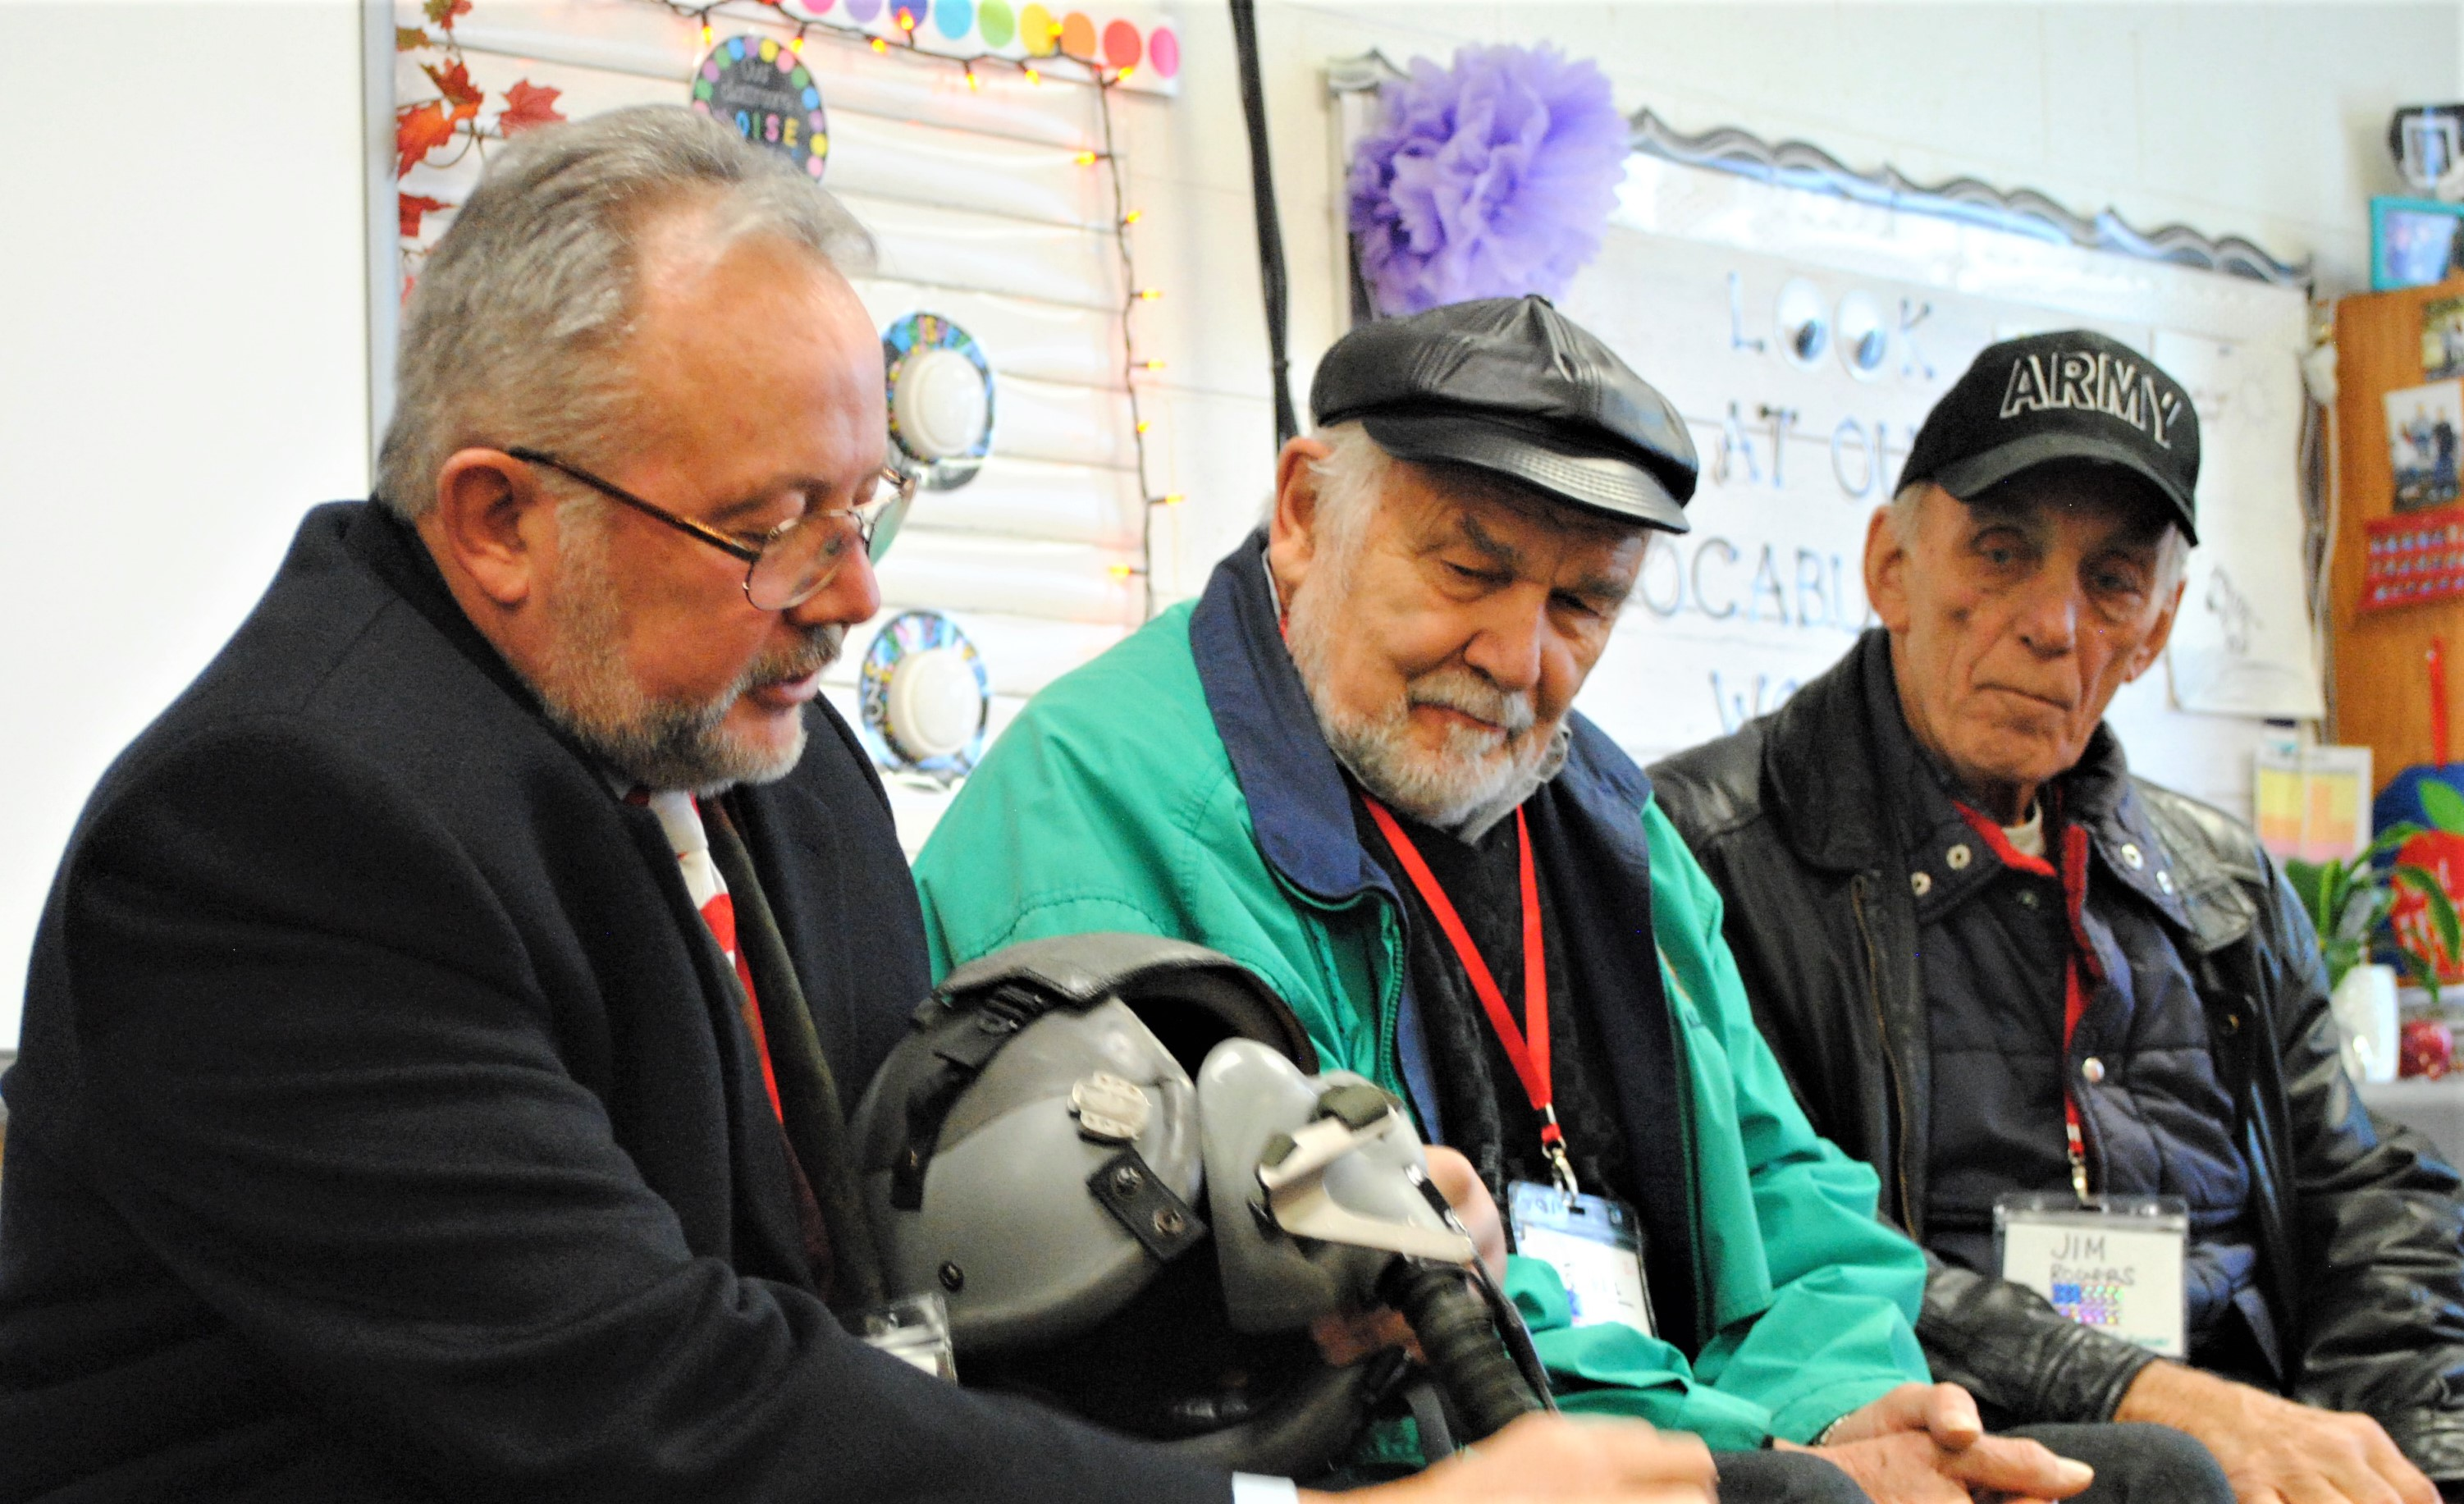 While some came with memories, others came with mementoes from their time in the service for students to see. Greg Gonyea had his air helmet and parachute pack in tow for a class of second-graders to put their hand on. With him is veterans Lloyd Schmaltz and Jim Rogers. Photo by Shelby Tankersley.